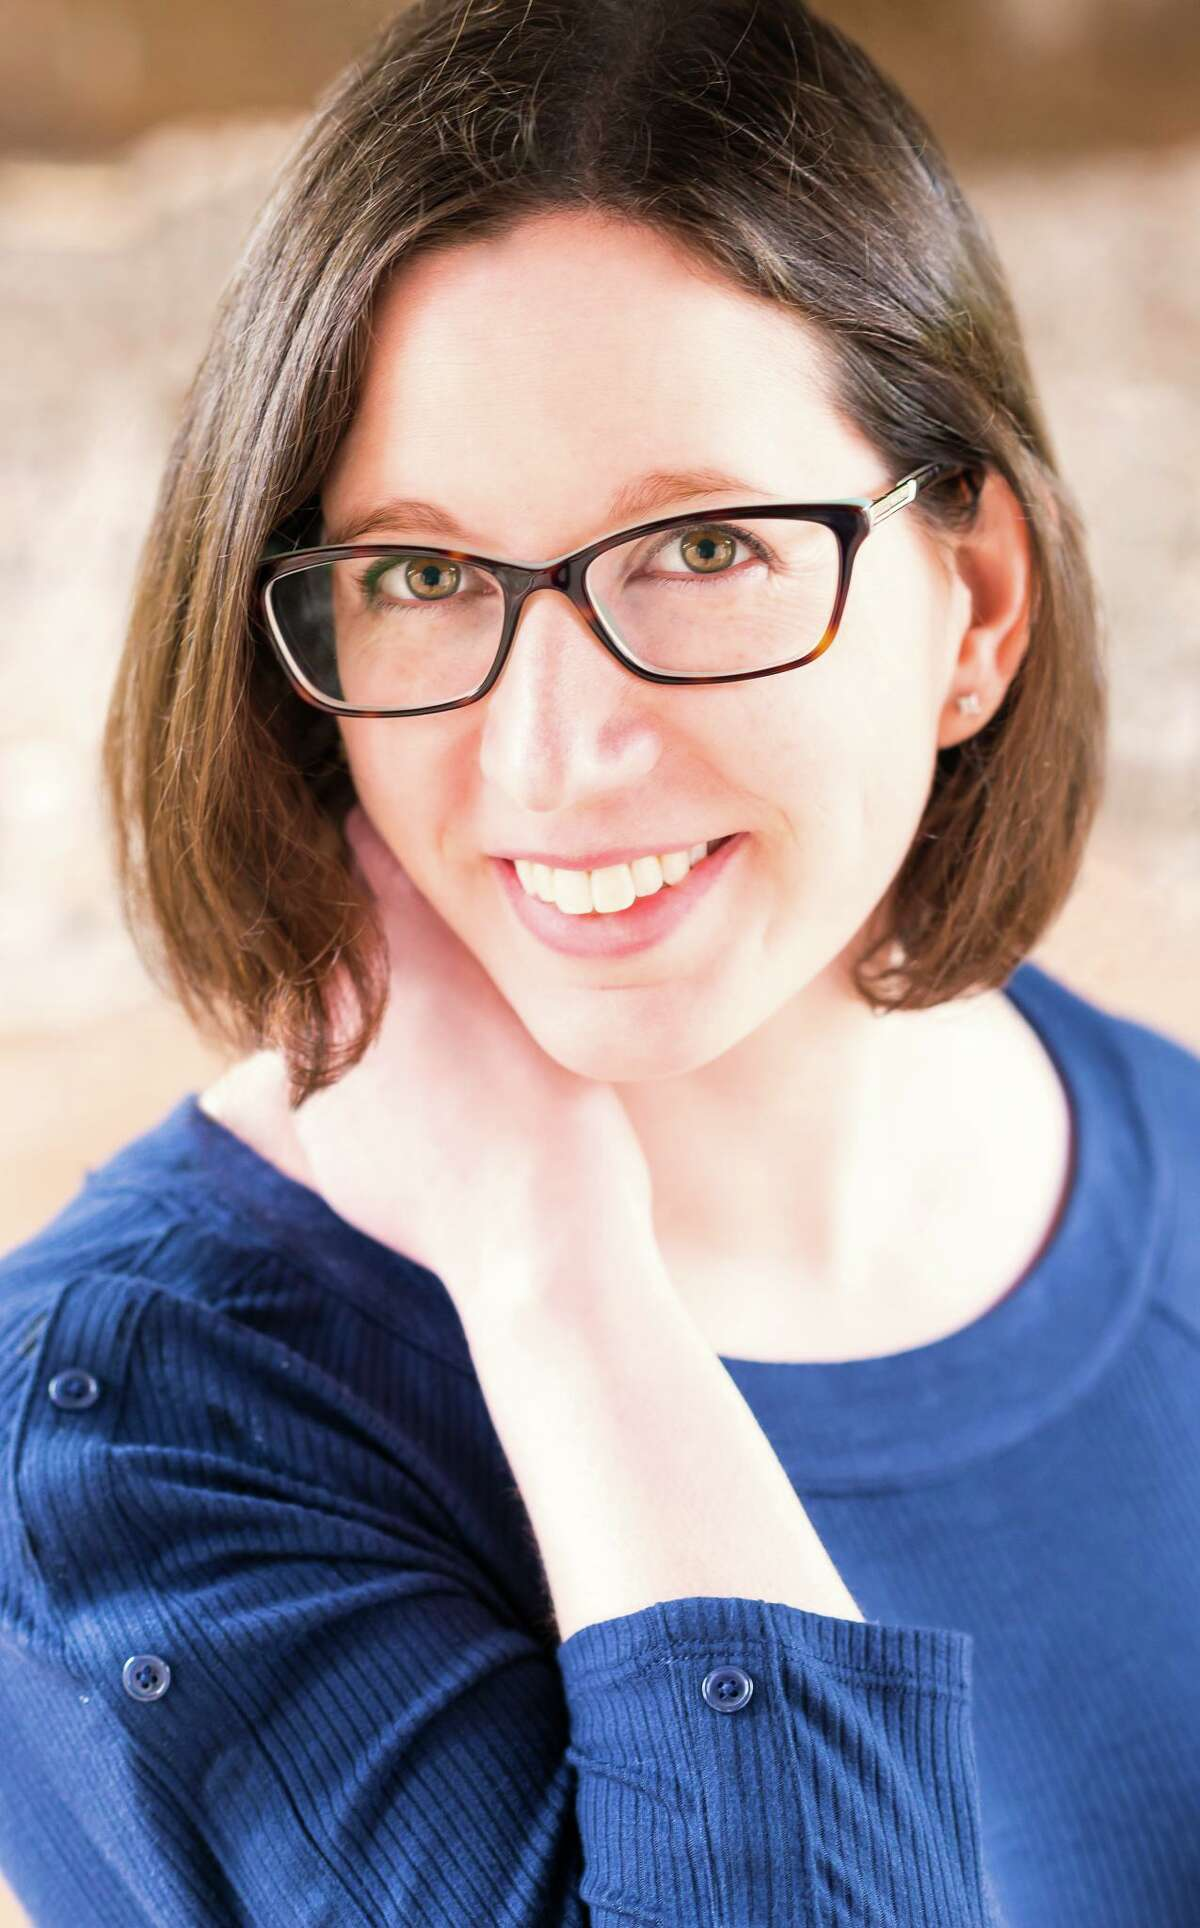 Megan Collins is an author from Manchester.